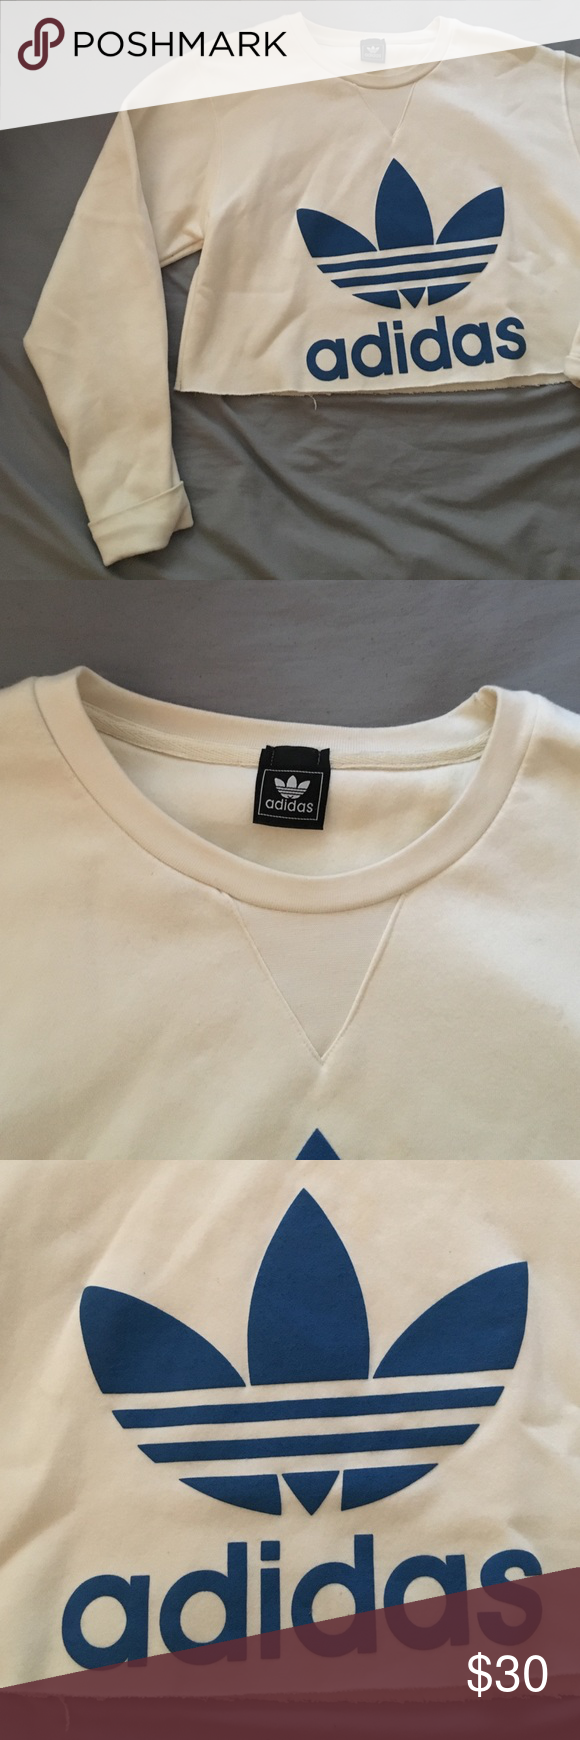 Vintage Cream Colored Adidas Sweatshirt Bought At Vintage Shop And Never Wore Two Minimal Tiny Stains On Sleeve Sweatshirts Adidas Sweatshirt Sweatshirt Buy [ 1740 x 580 Pixel ]